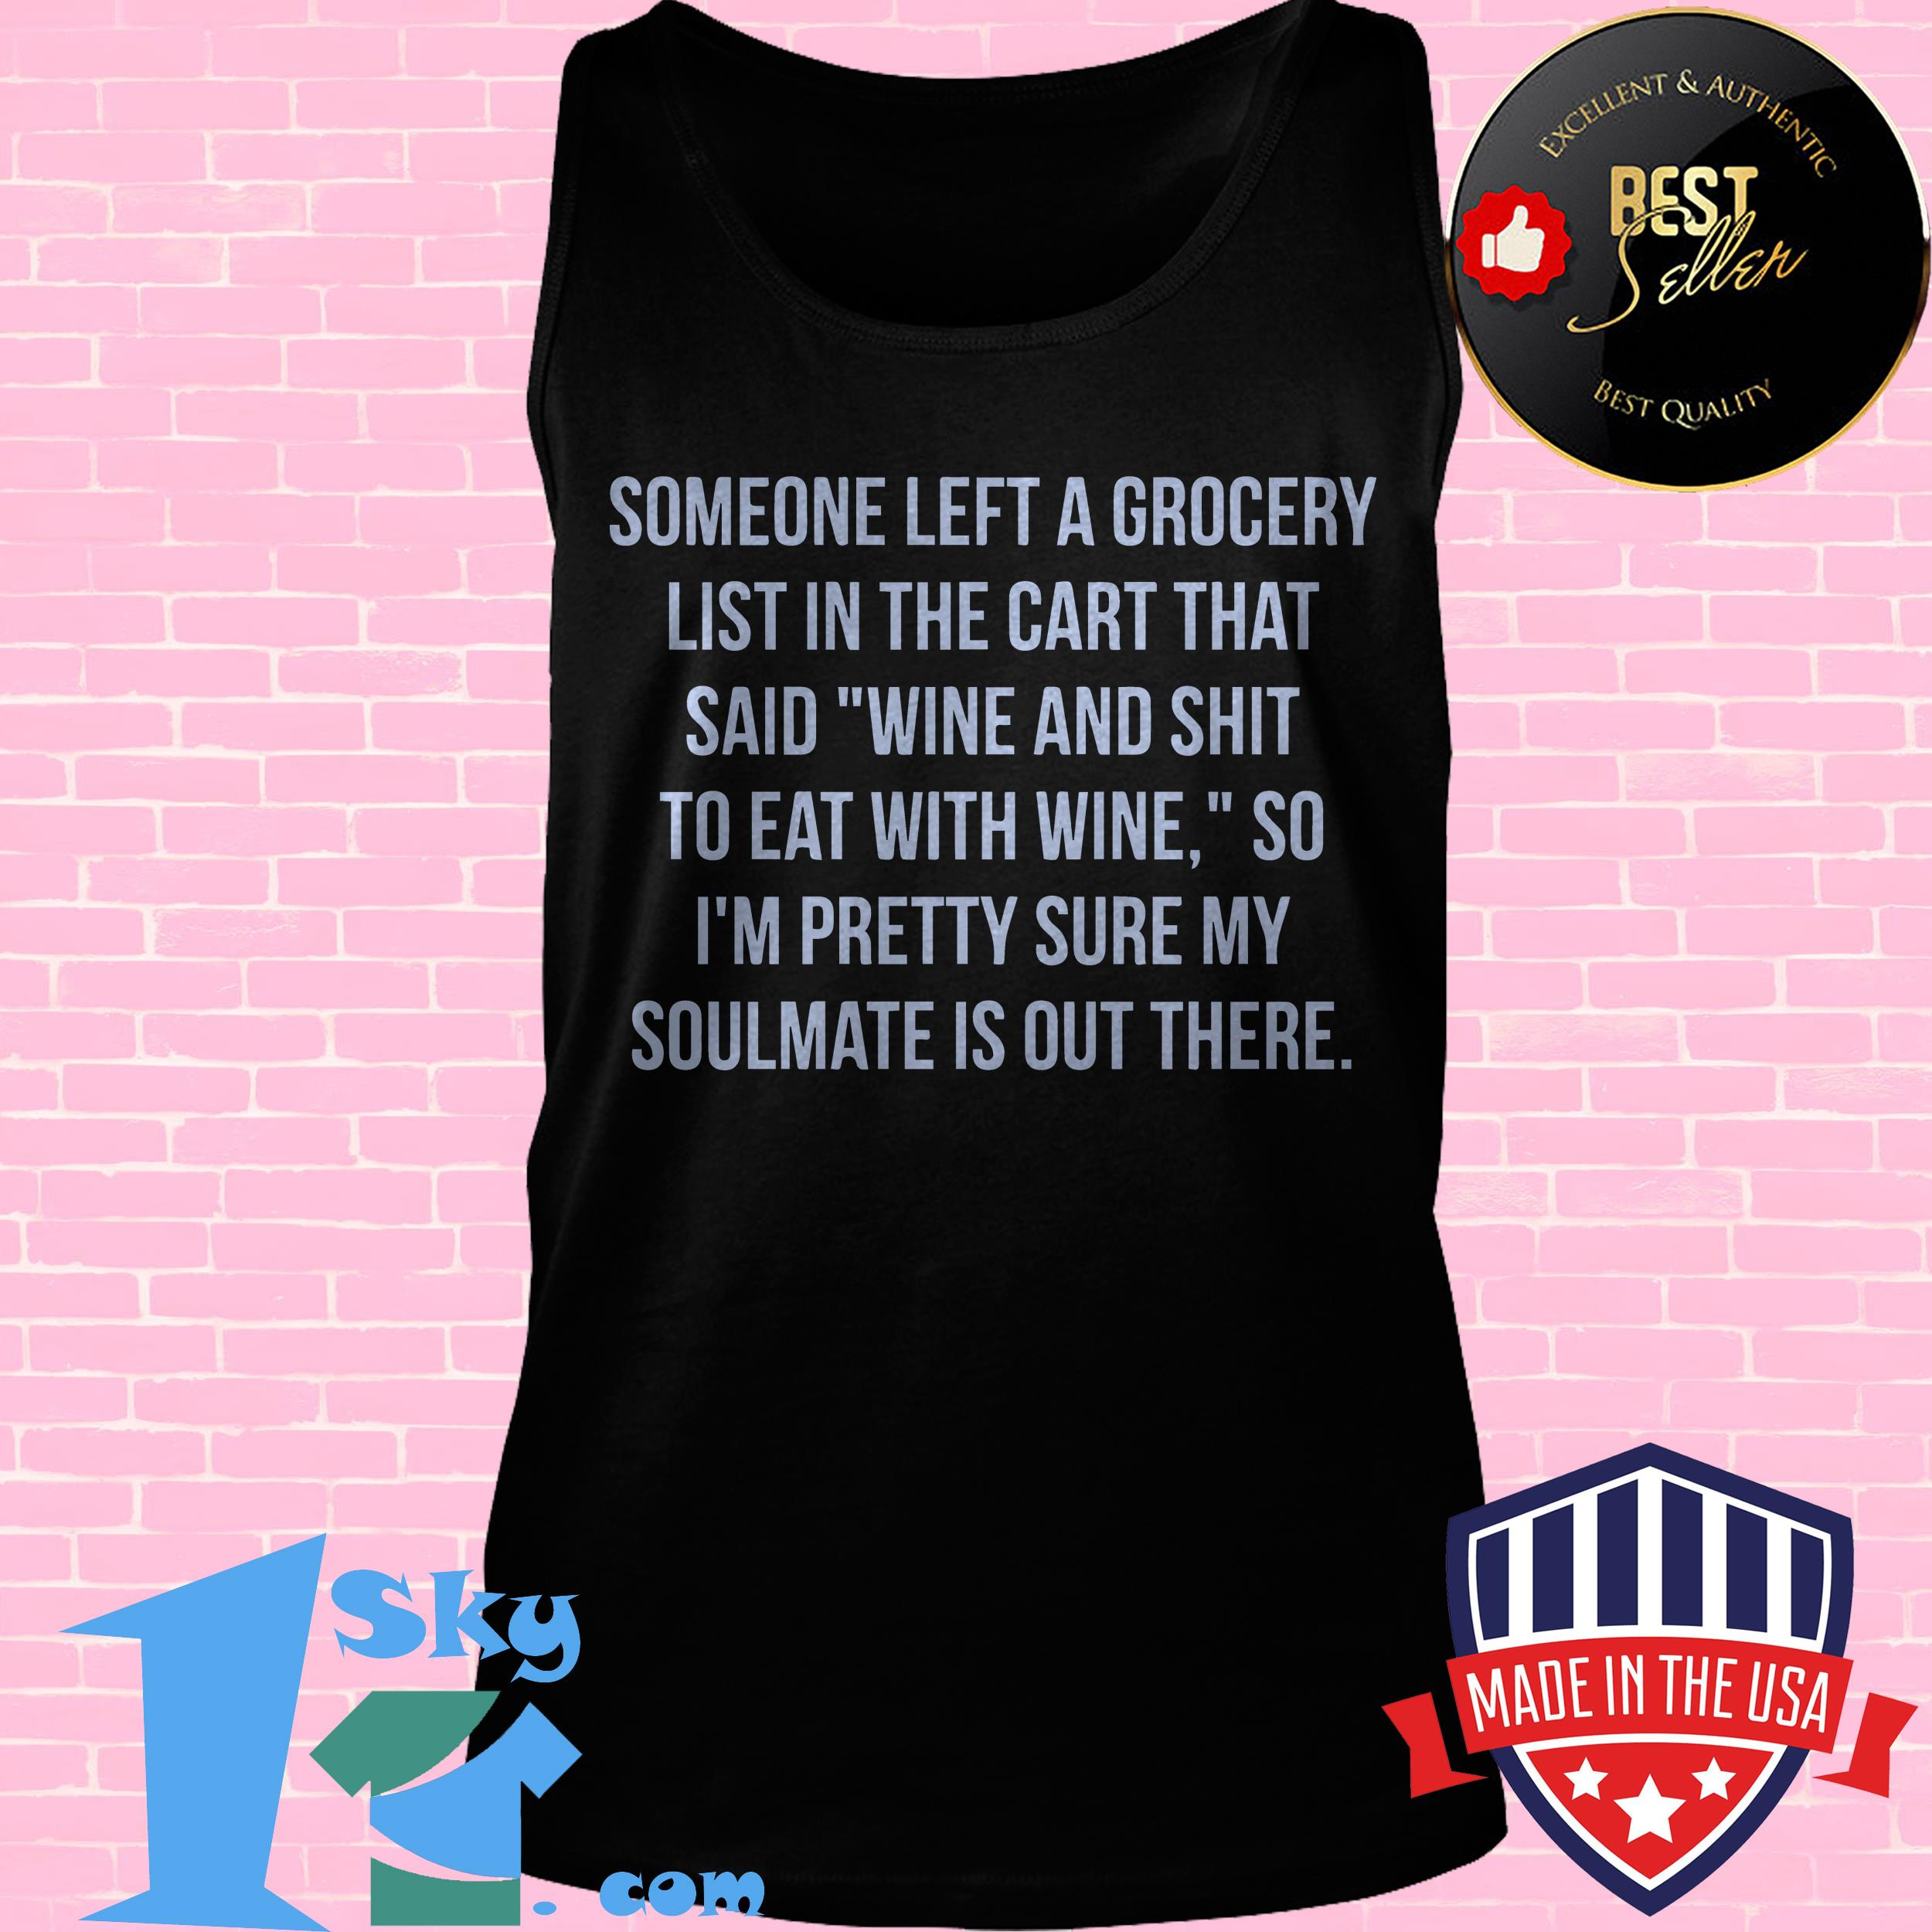 cheese and shit soulmate grocery list tank top - Cheese and Shit Soulmate Grocery List shirt